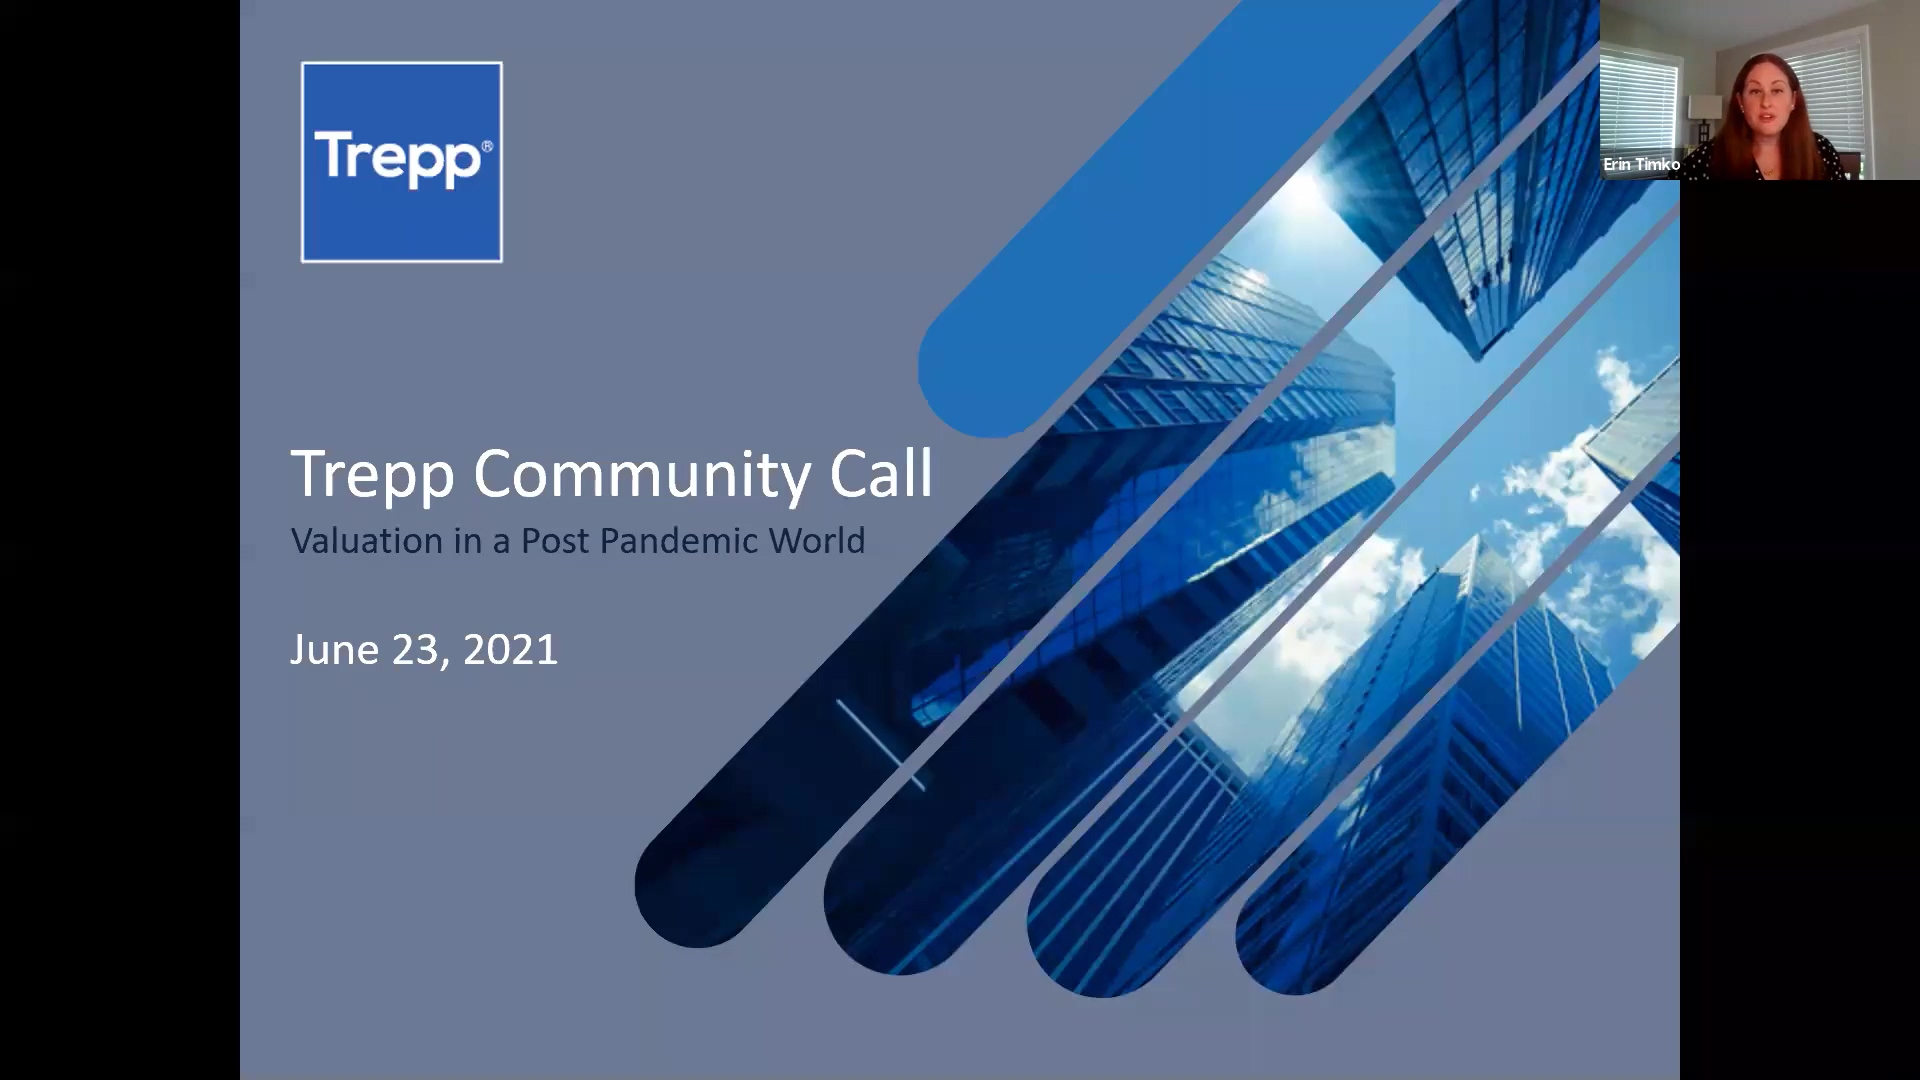 Trepp Community Call Appraisal Review - Valuation in a Post Pandemic World